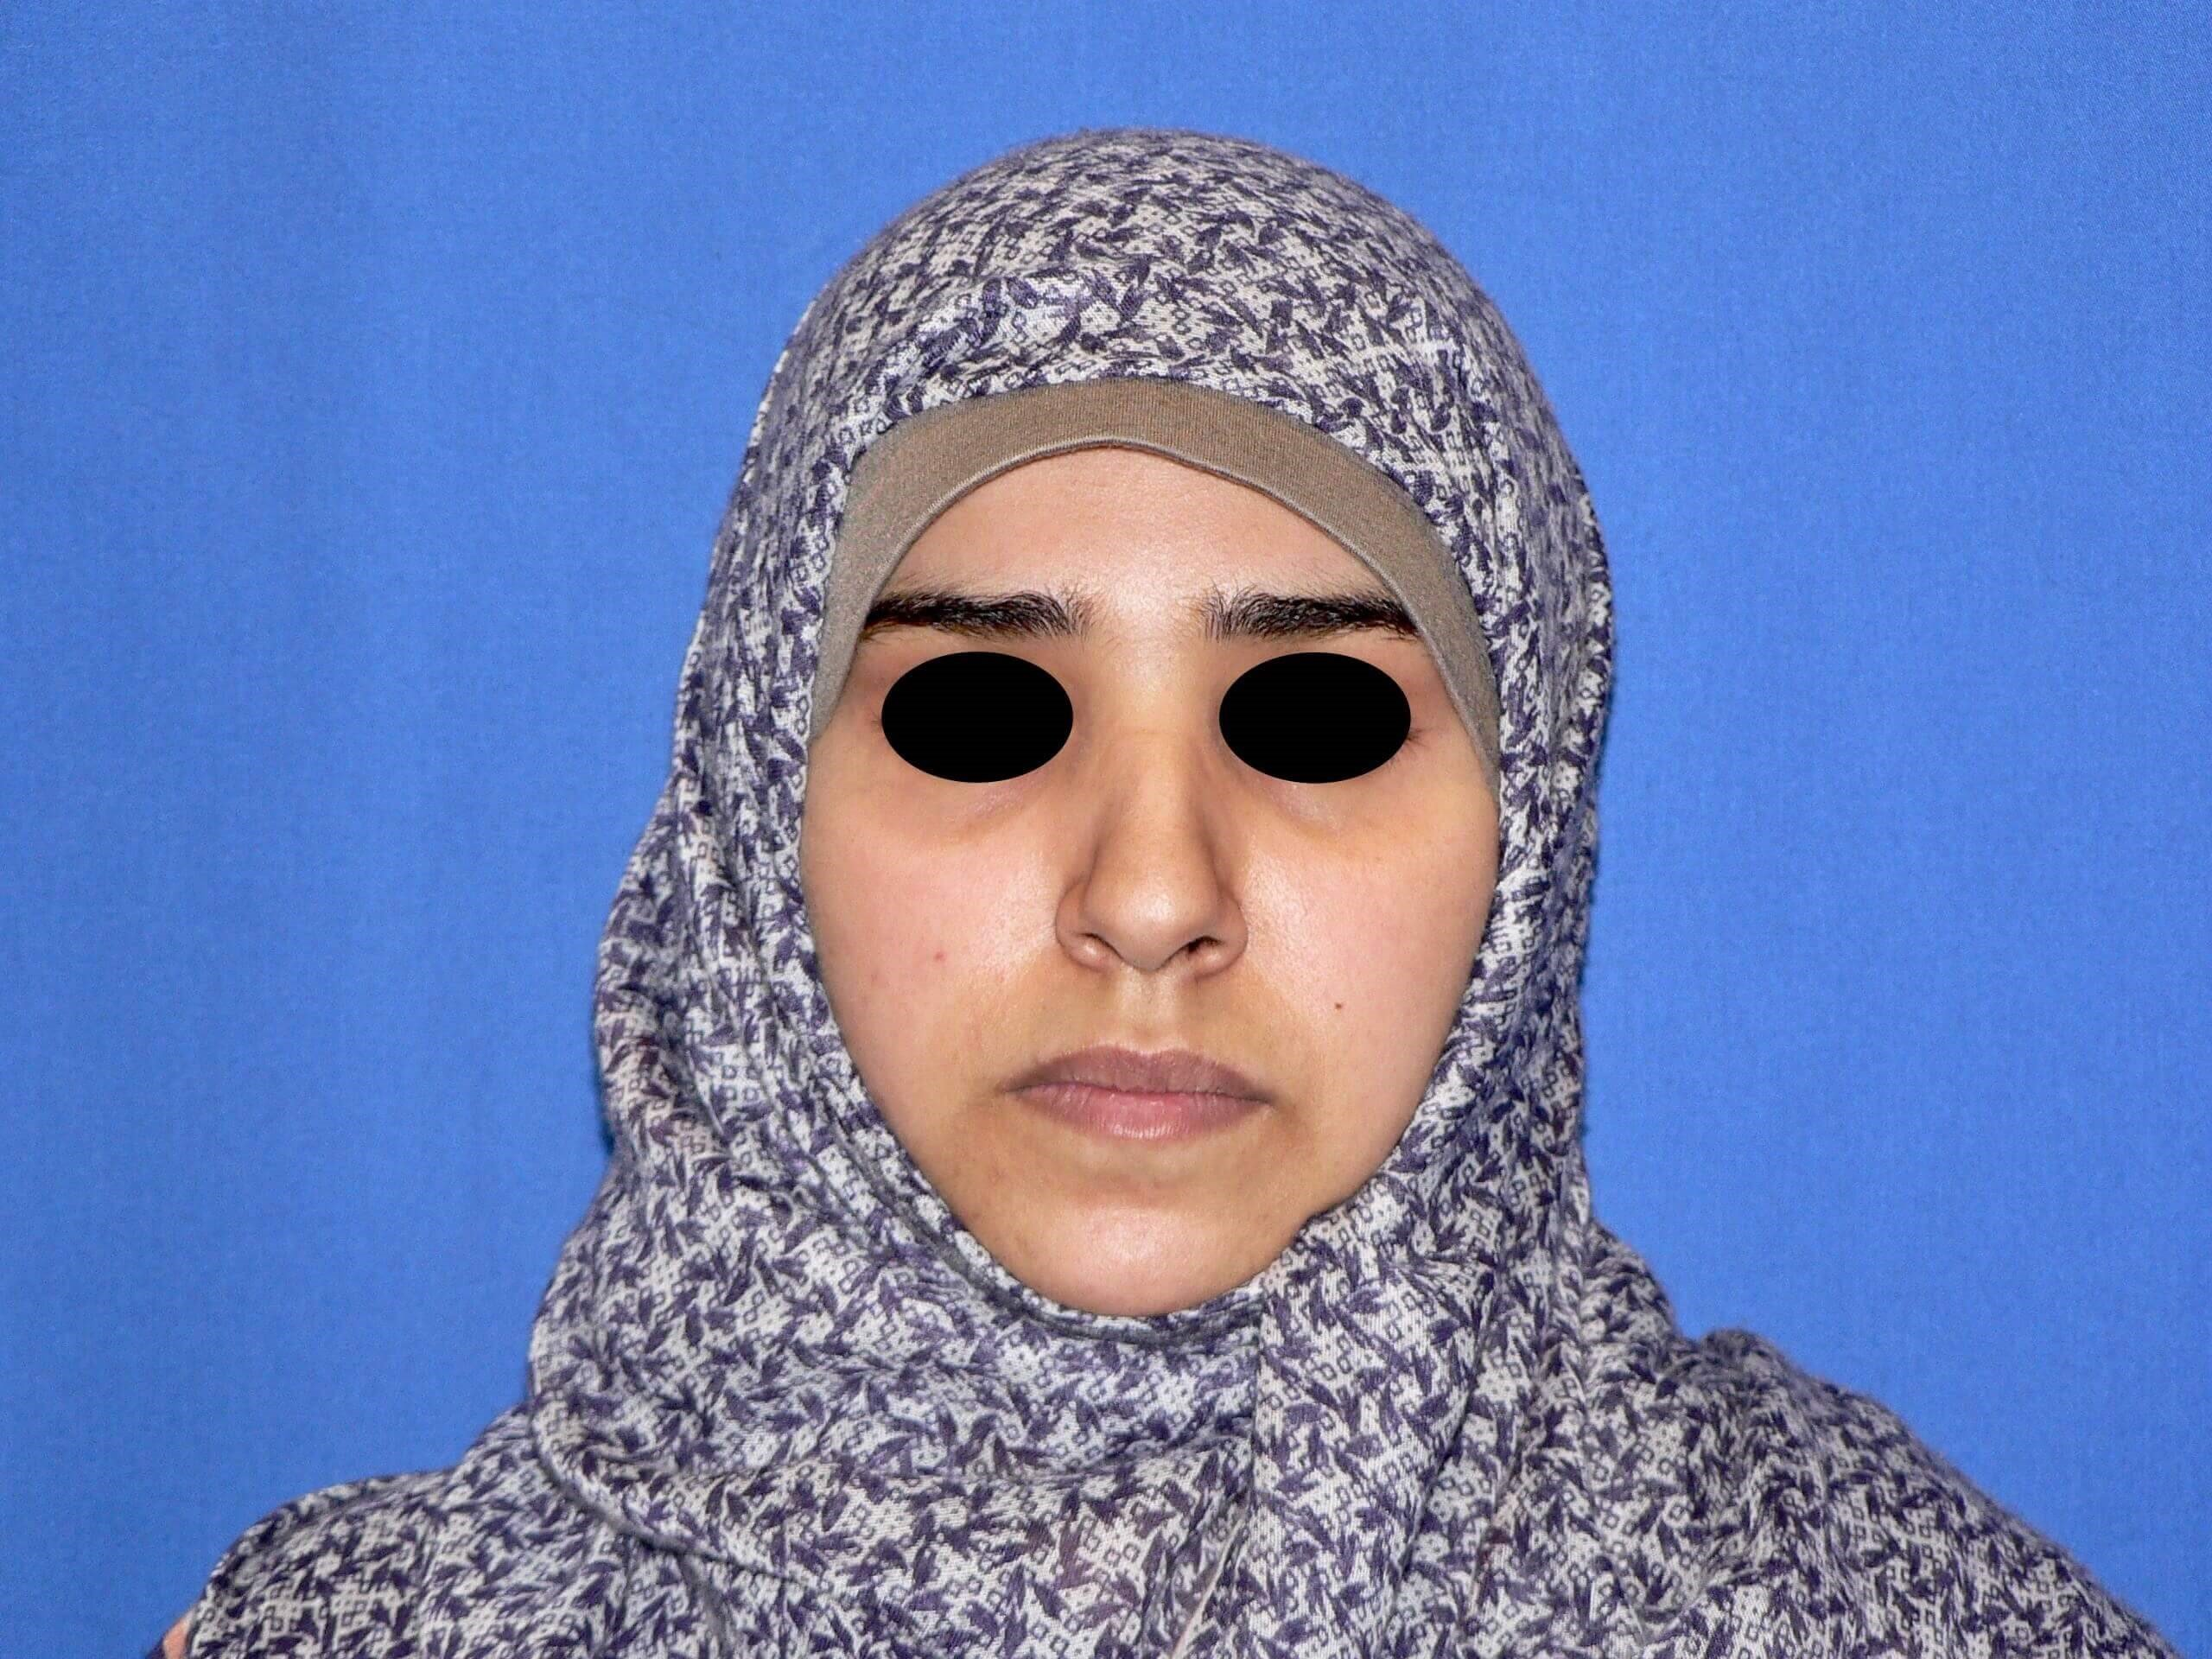 Middle Eastern Rhinoplasty Before